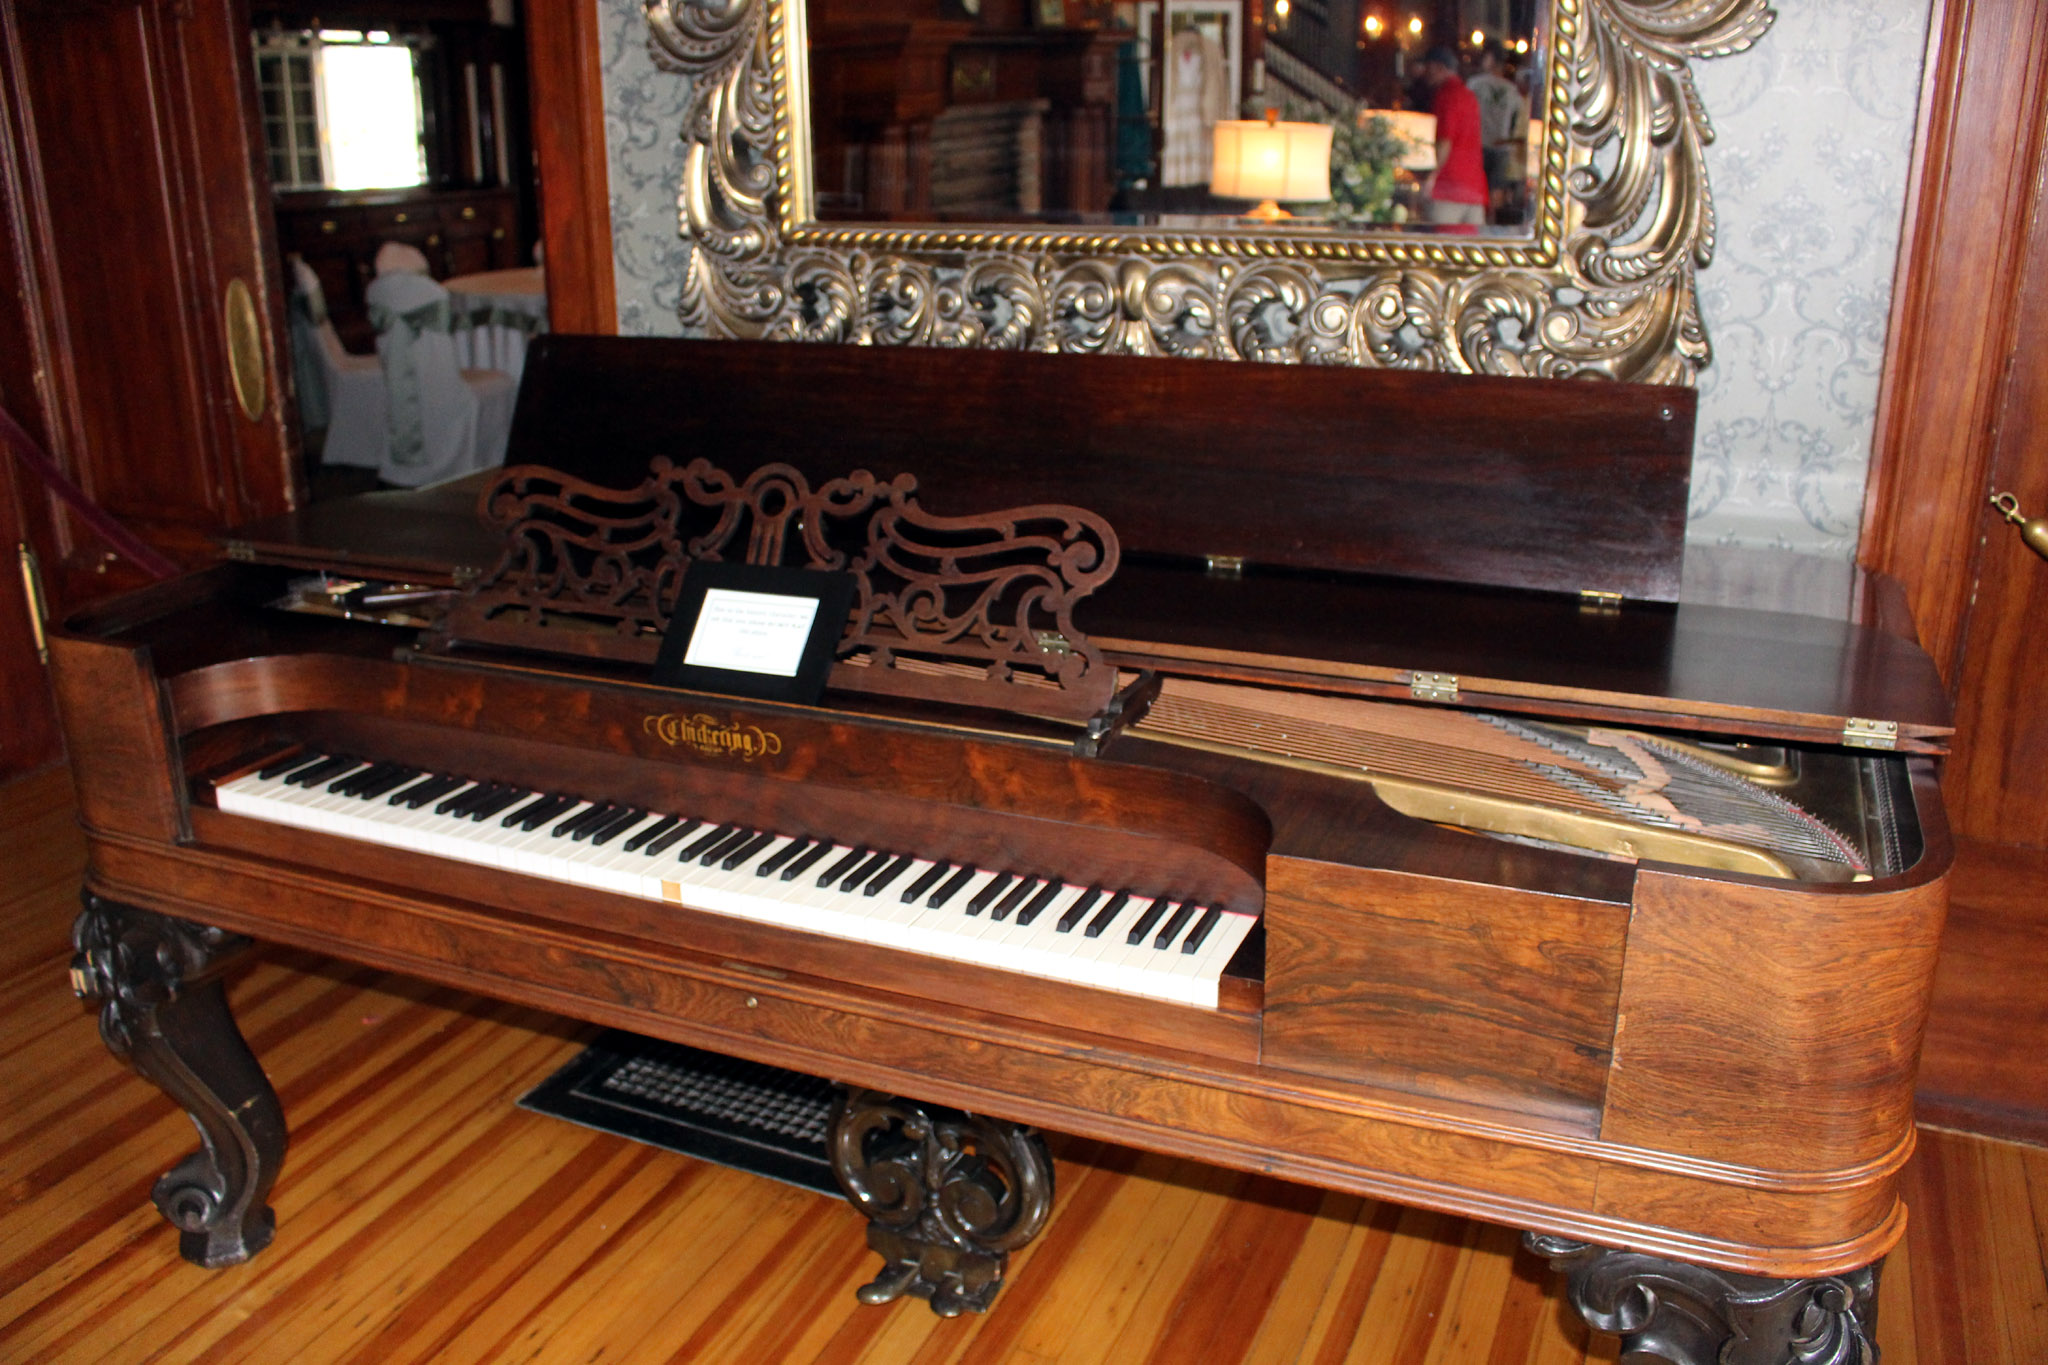 Chickering Piano - Stanley Hotel